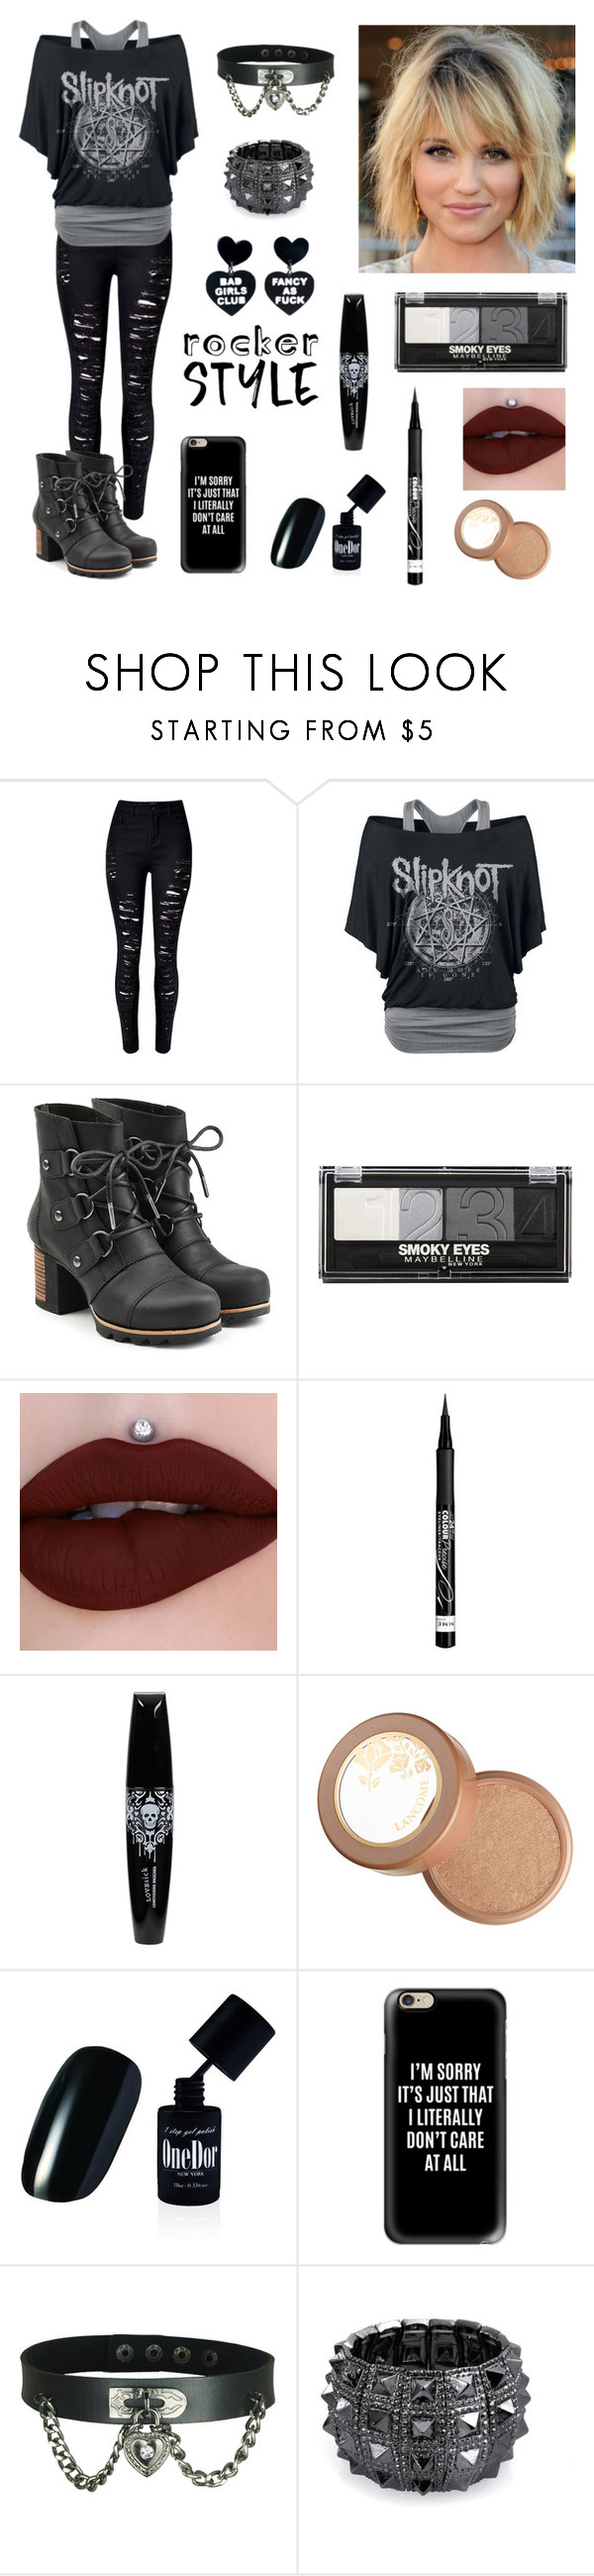 """""""Rocker Girl"""" by roseforbes ❤ liked on Polyvore featuring WithChic, SOREL, Maybelline, Rimmel, Lancôme, Casetify, Bling Jewelry, rockerchic and rockerstyle"""